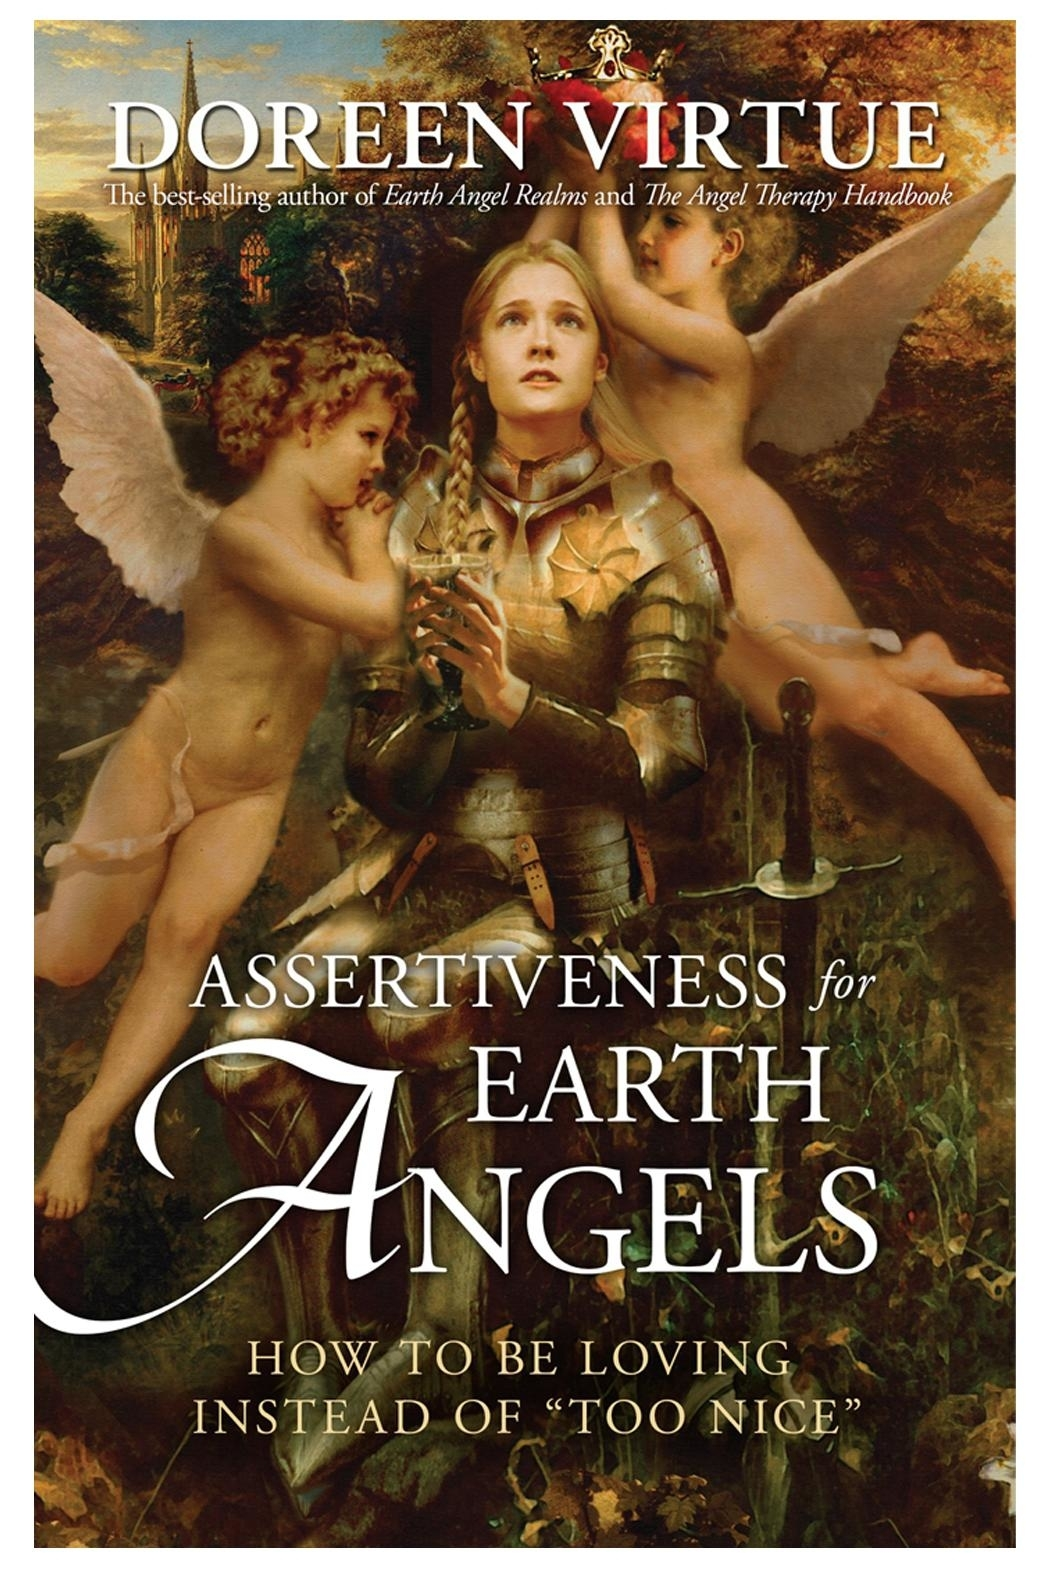 tu-anh boutique Assertiveness Earth Angels - Main Image